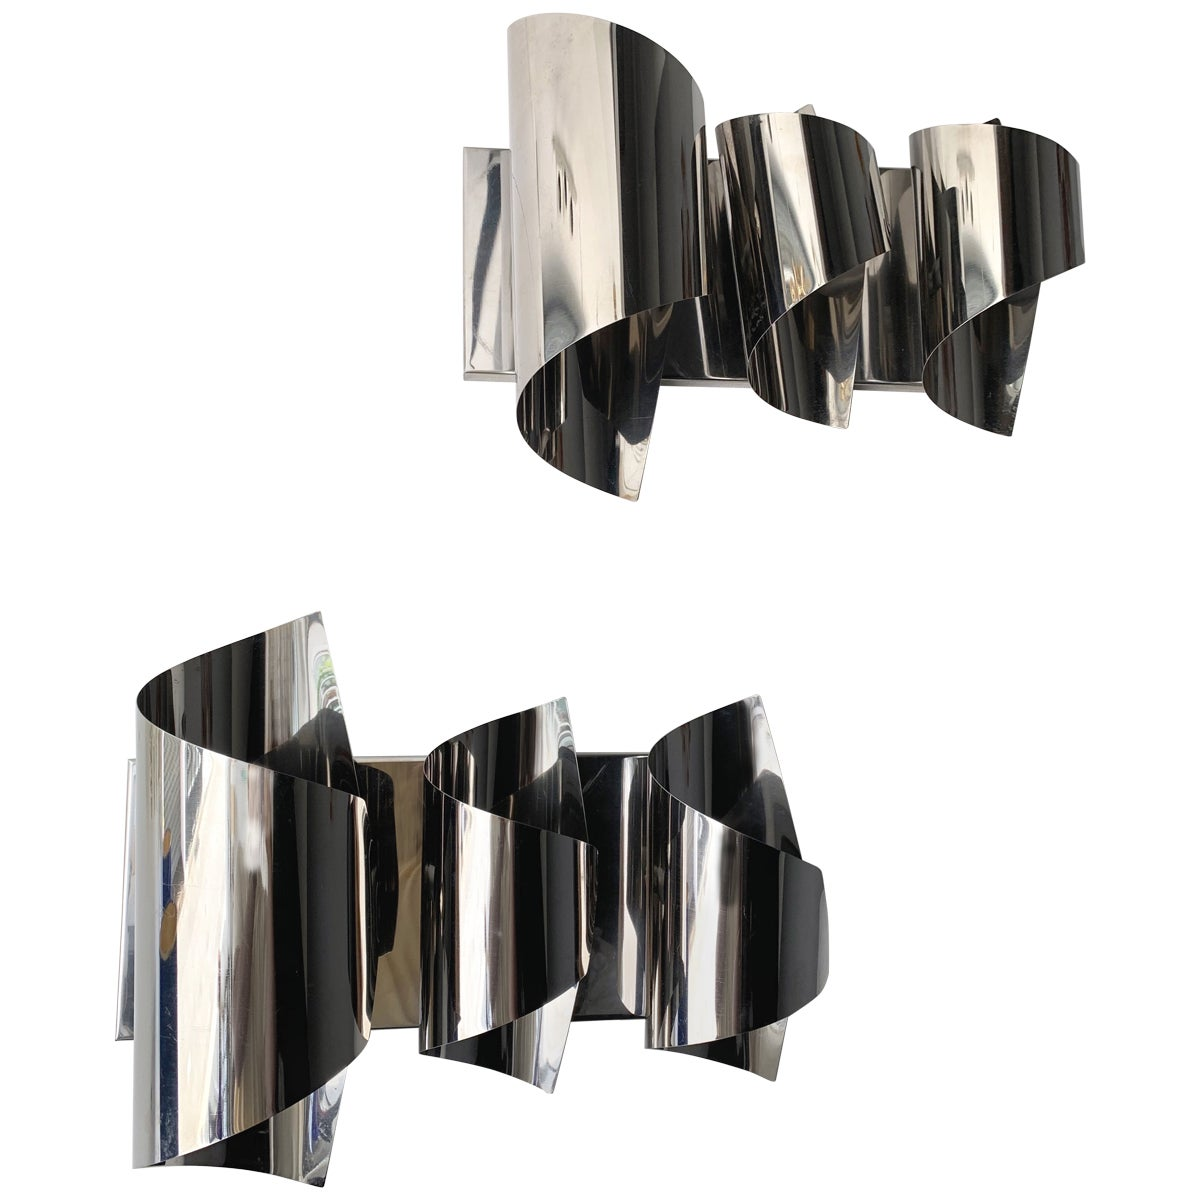 Pair of Spiral Metal Chrome Sconces by Reggiani. Italy, 1970s